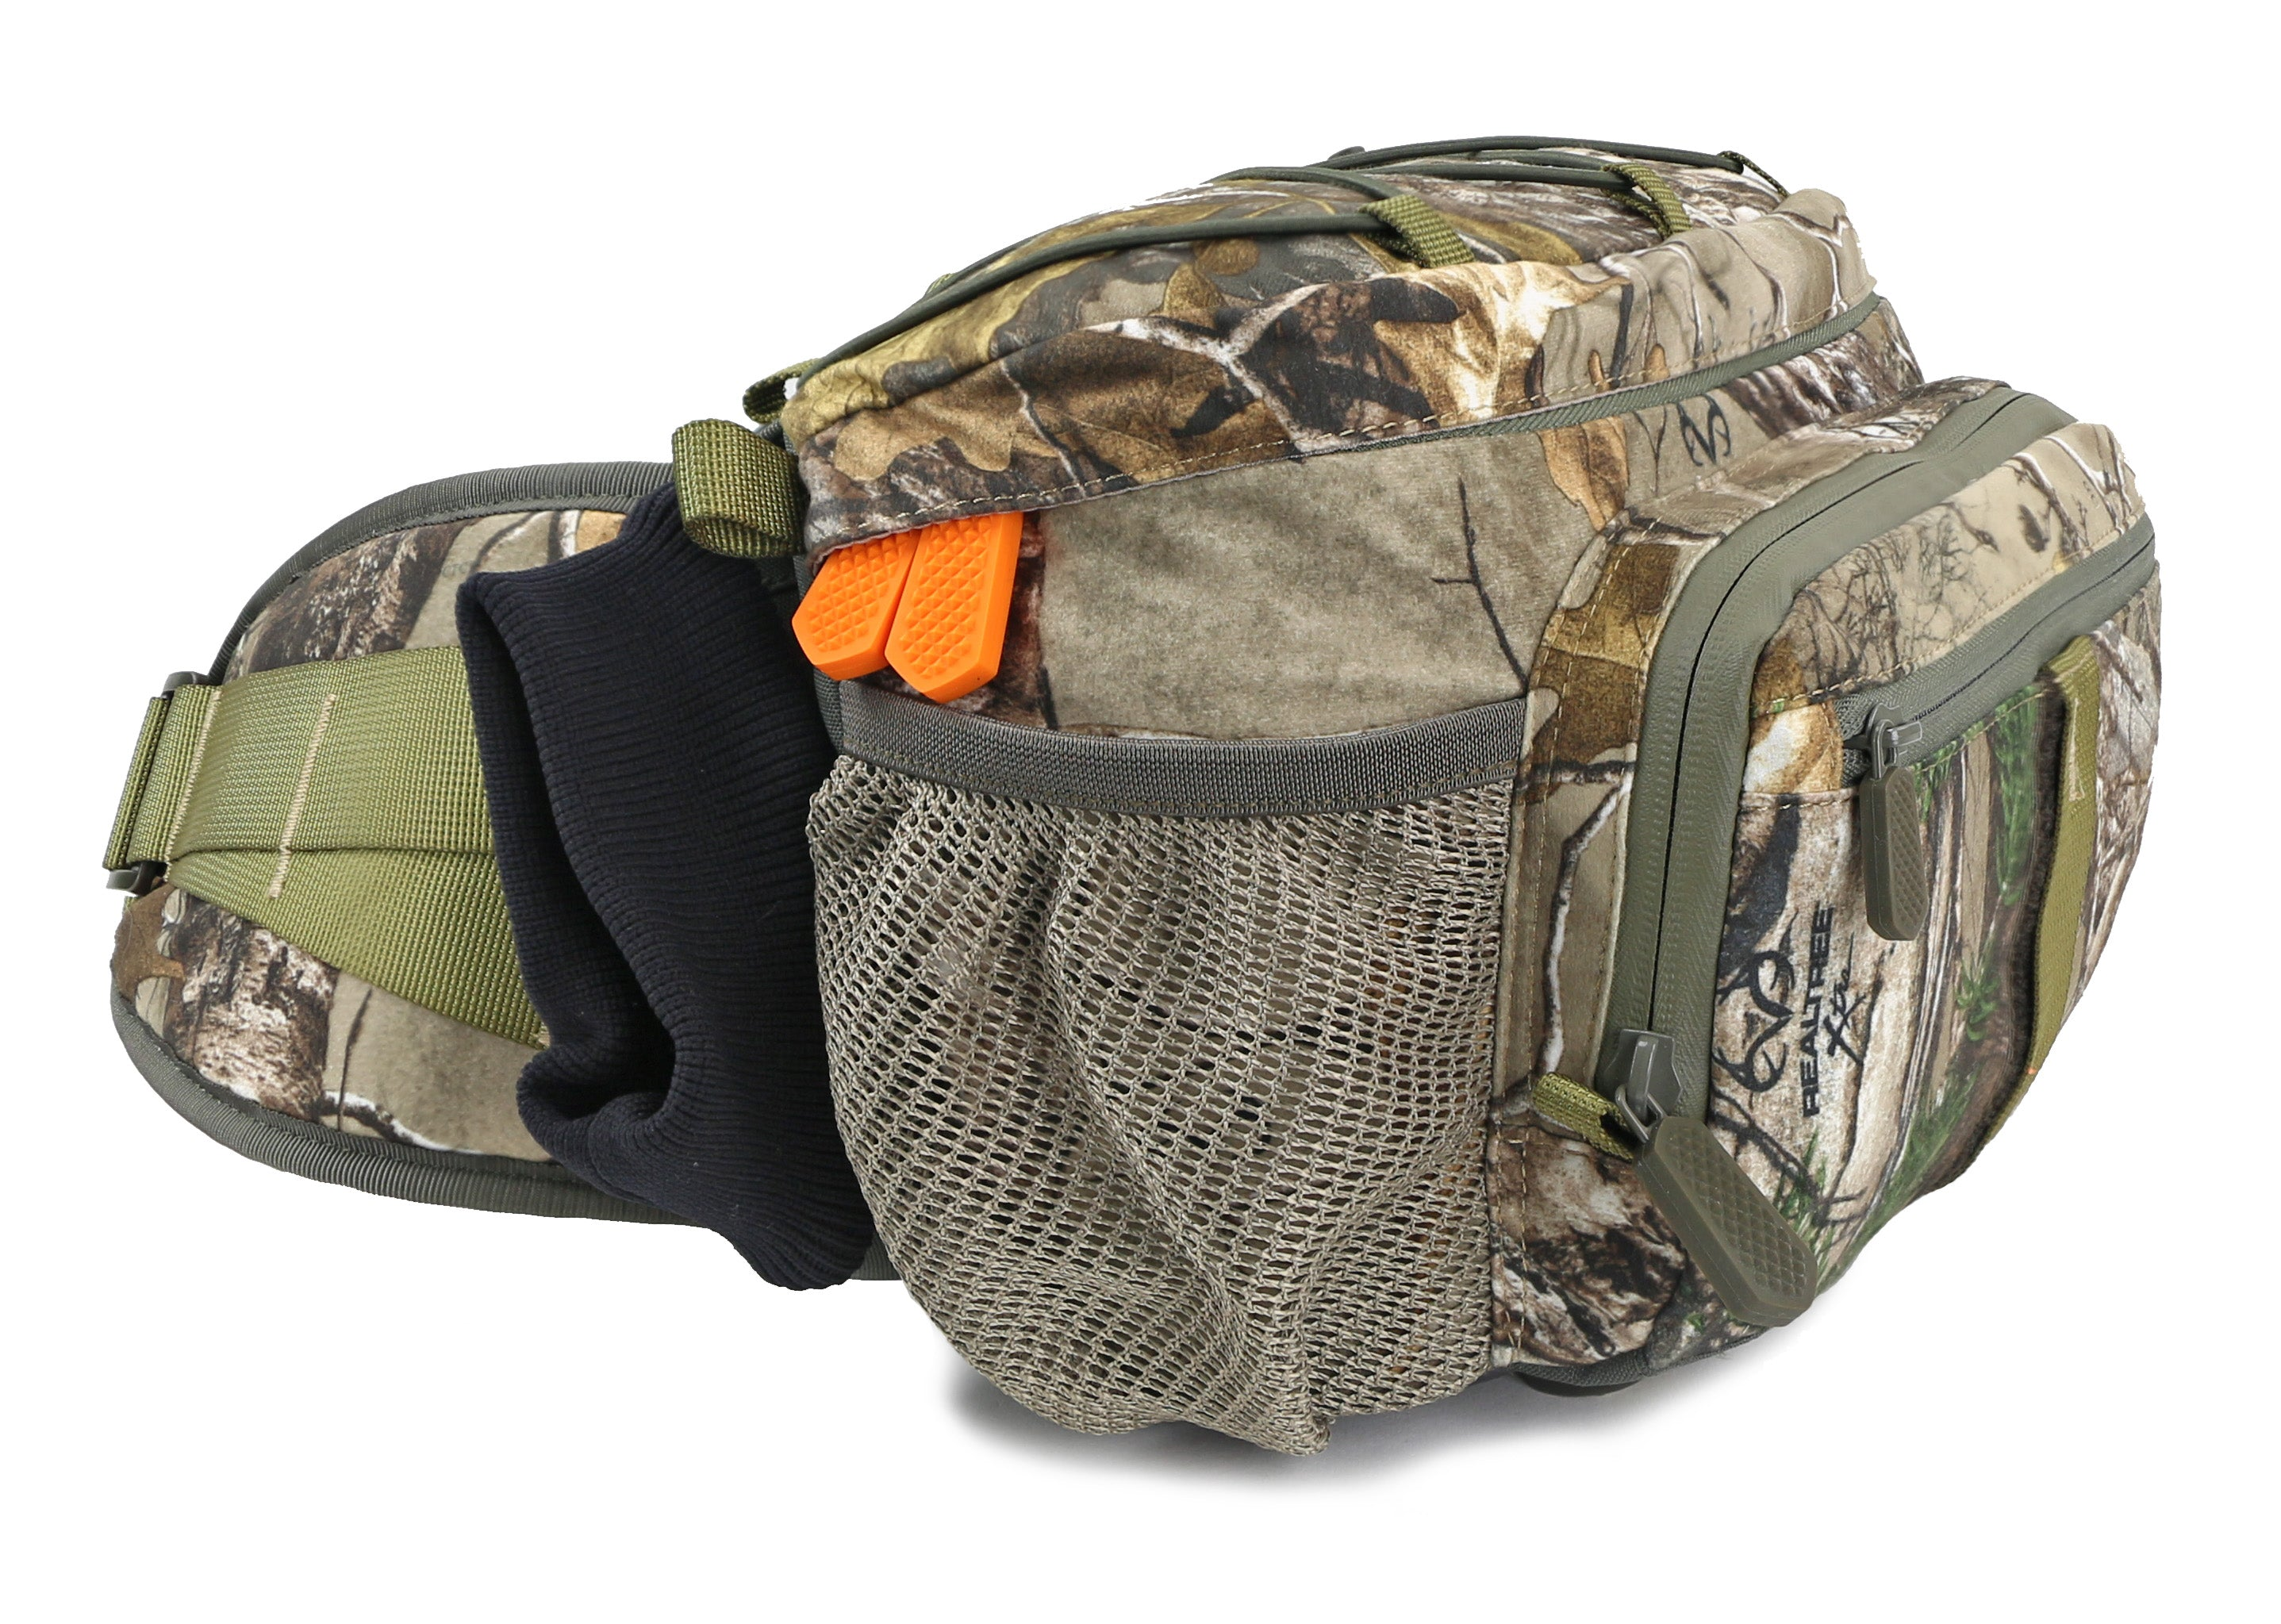 bb02bd06 PIONEER 400RT Hunting Waist Pack with Lifetime Warranty - Realtree Edge ...